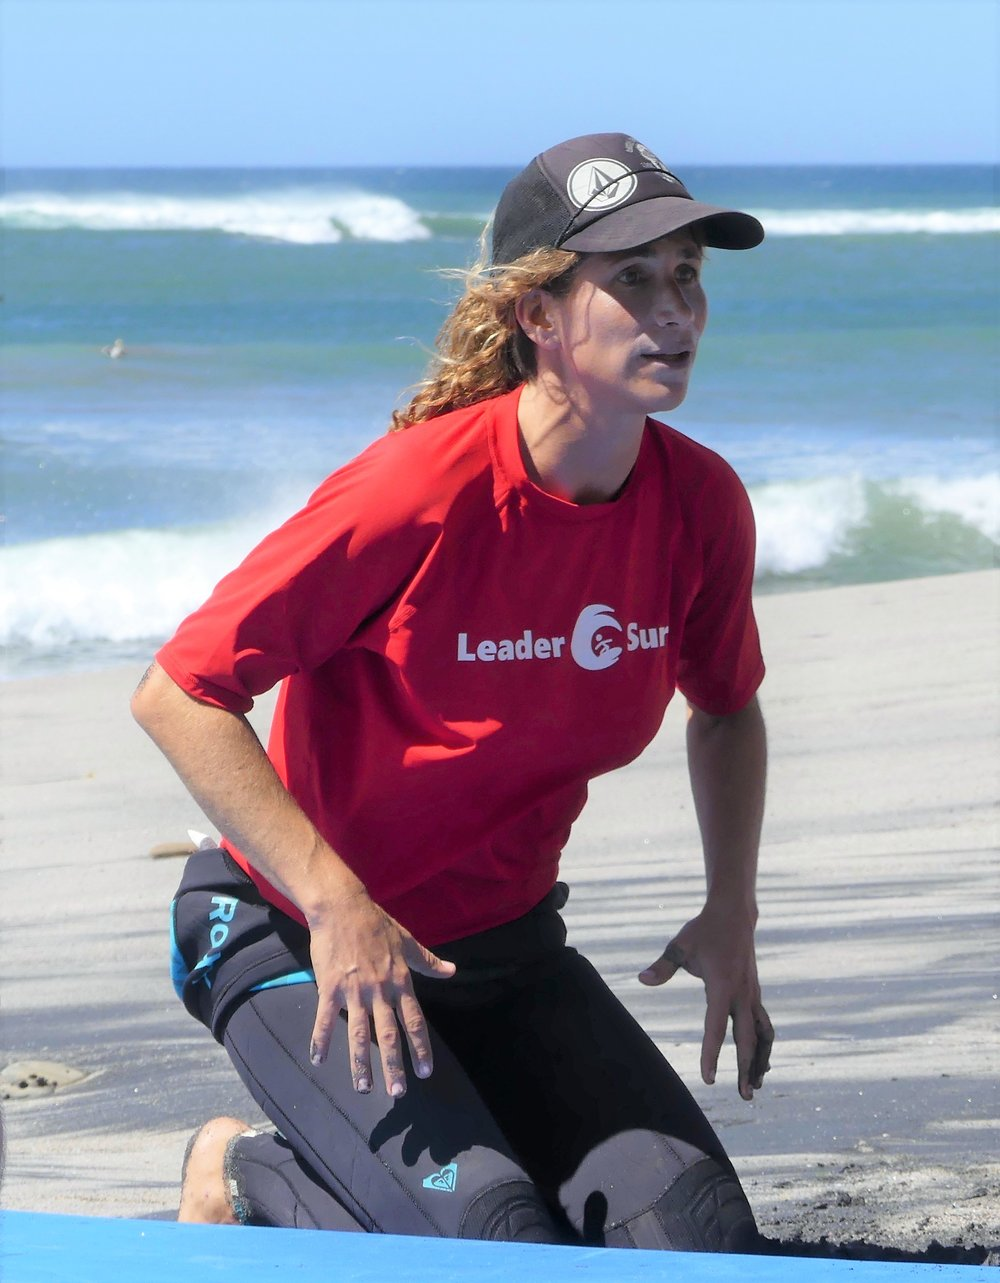 Aura Boulton LeaderSurf Surf Instructor